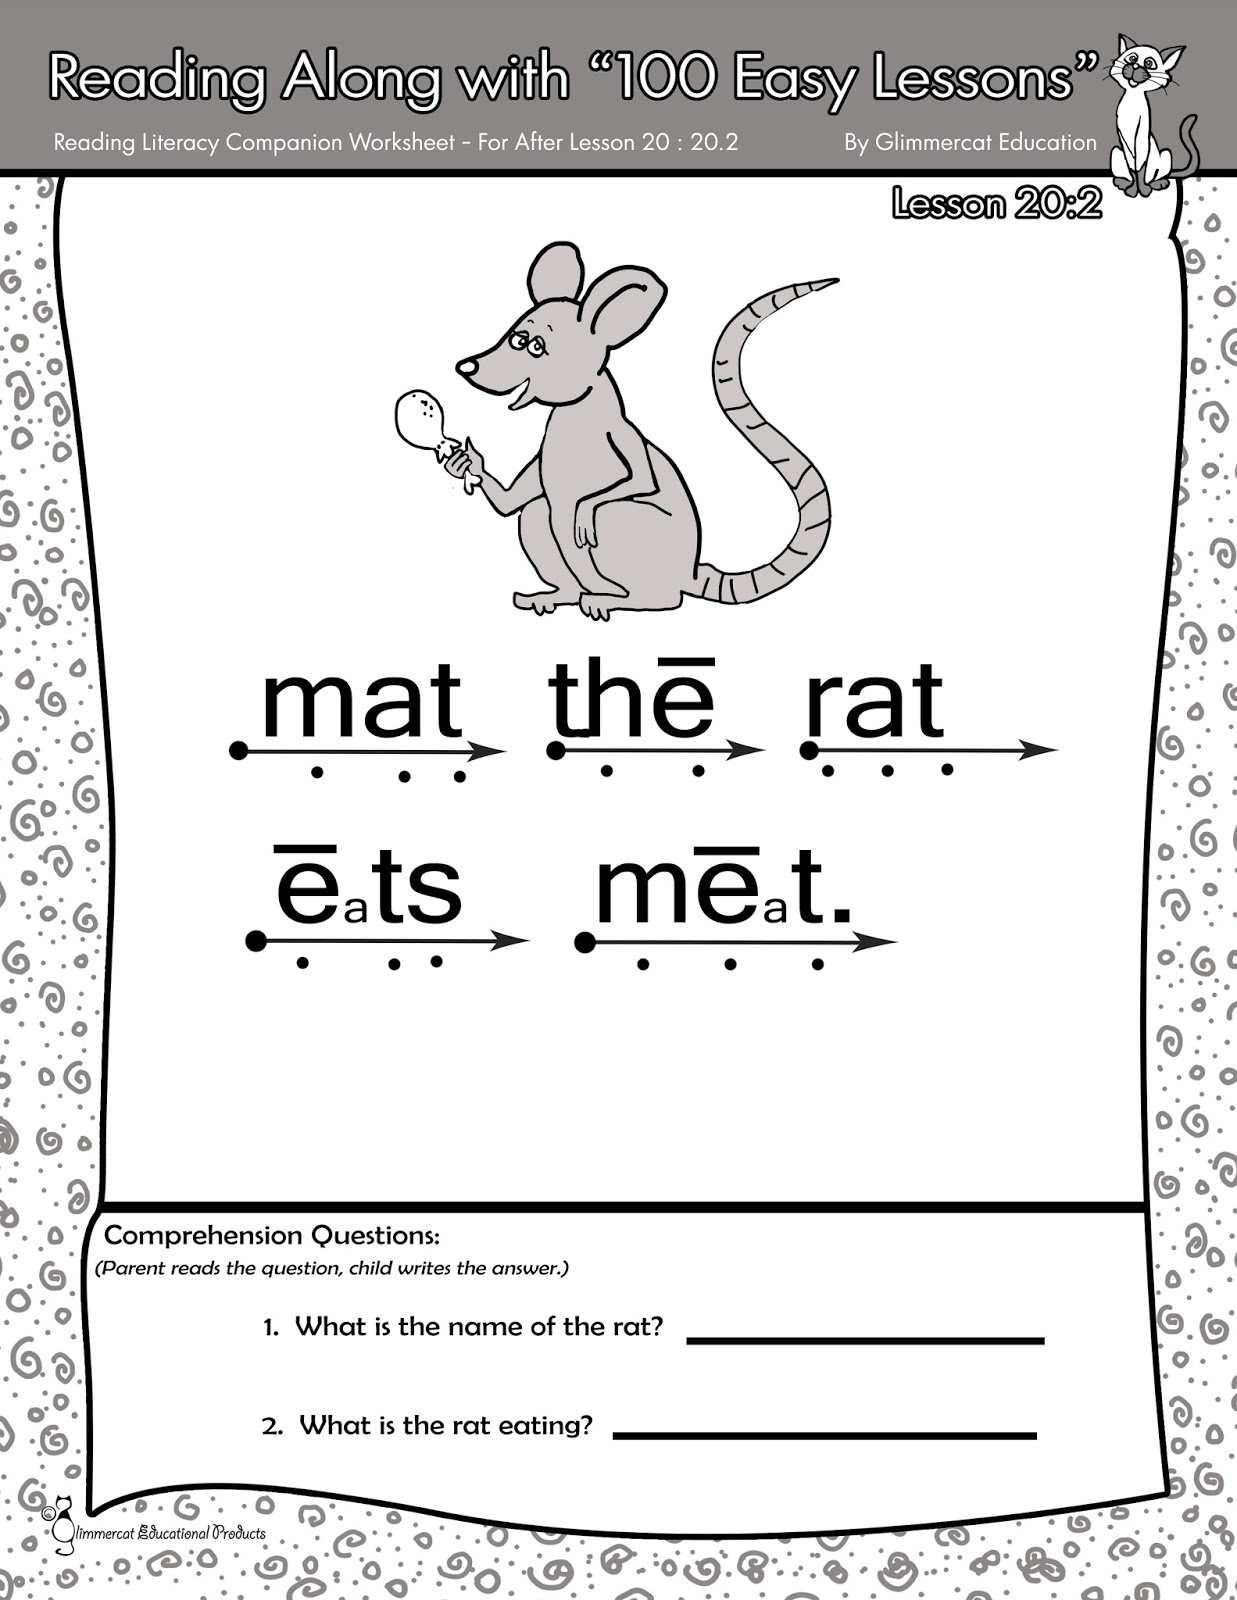 Worksheets Teach Your Child To Read In 100 Easy Lessons Worksheets glimmercat supplemental activities for teach your child to read if youre not exactly sure what looking at there that is a mat the rat craft from one of my free